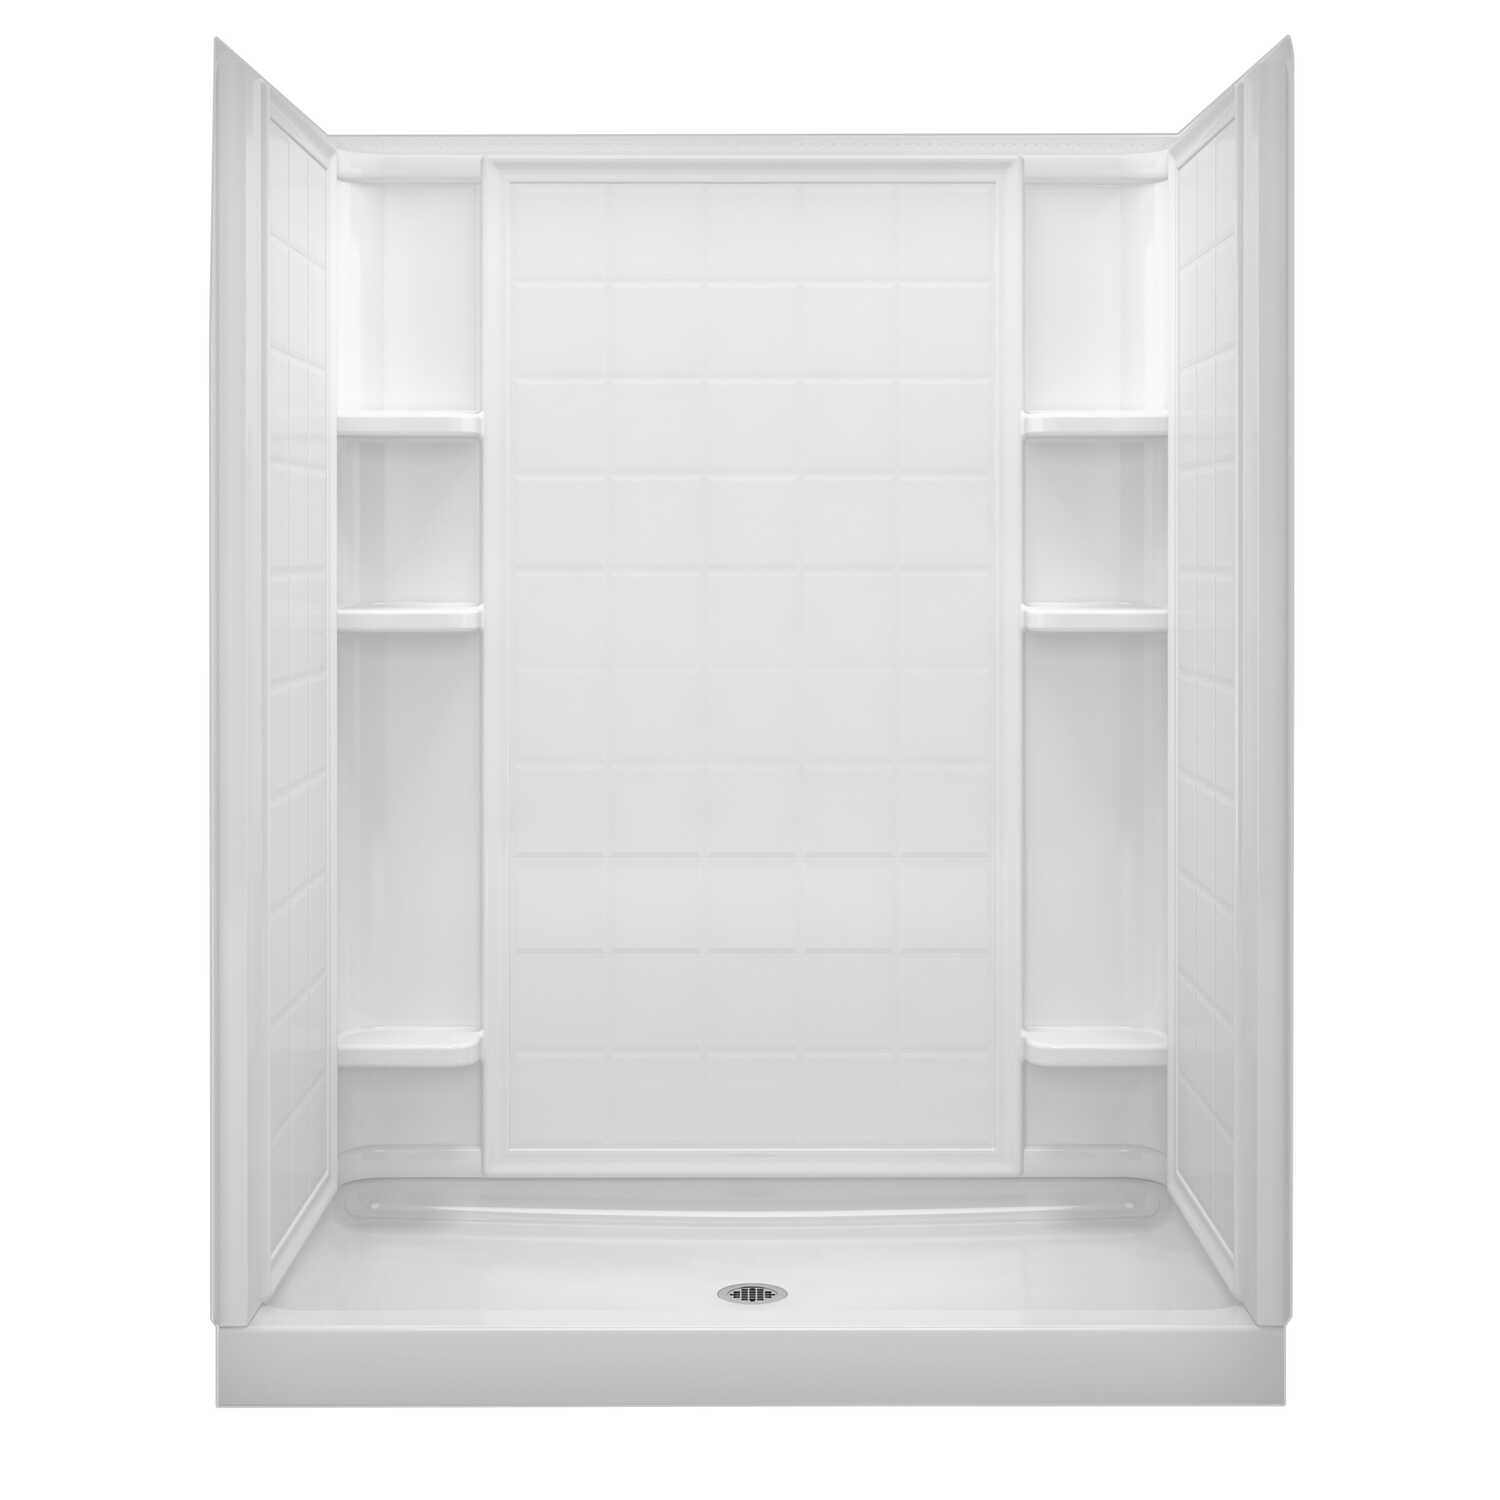 Sterling  Ensemble  4.5 in. H x 34 in. W x 60 in. L White  Shower Base  Plastic composite  Center Dr